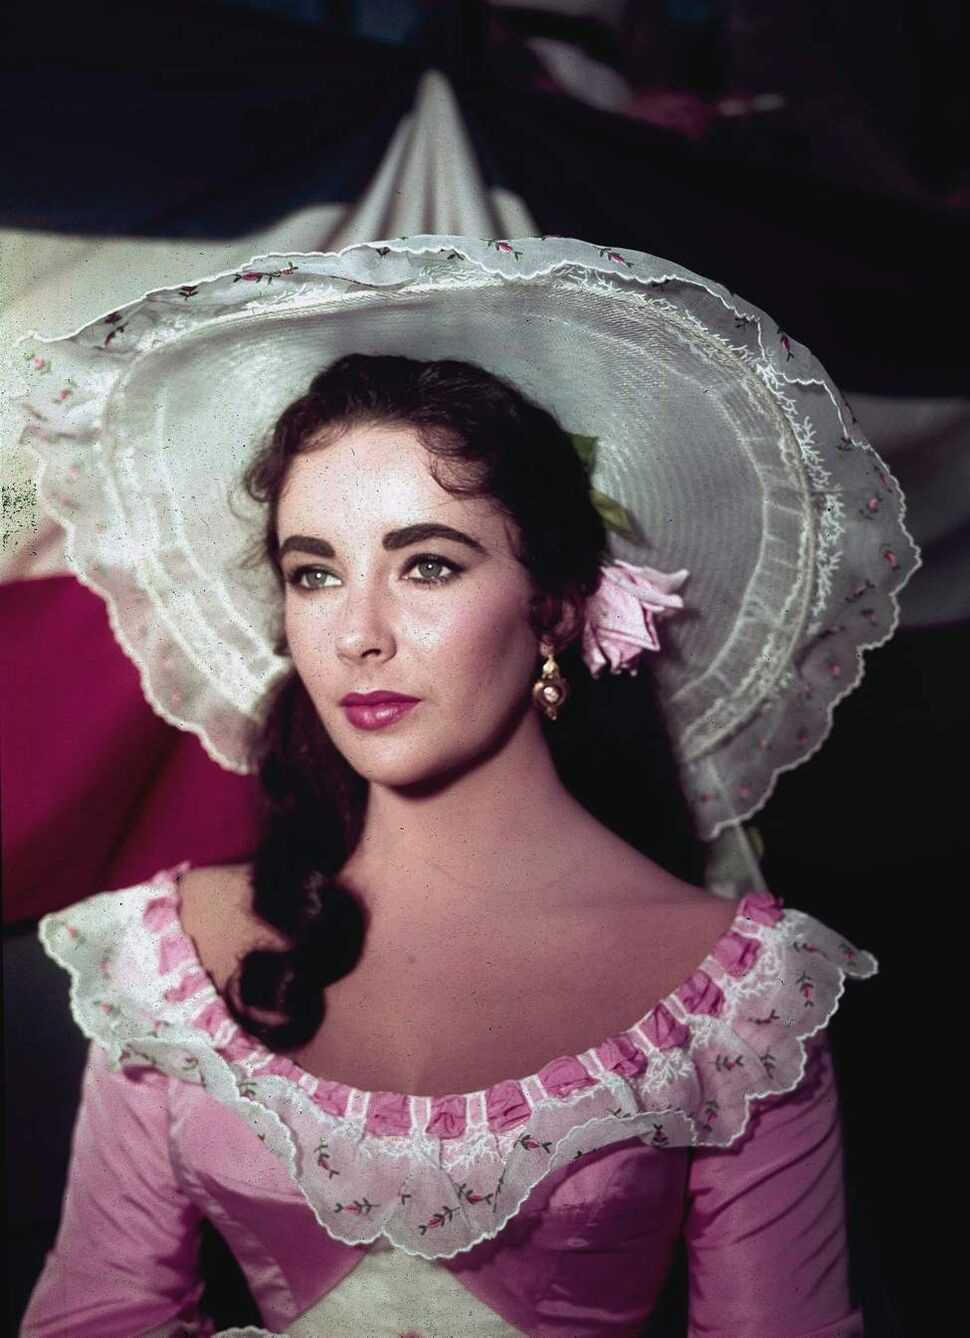 """In this 1957 file photo, actress Elizabeth Taylor is shown in costume for her character in the film """"Raintree County.""""  (AP Photo/File)"""